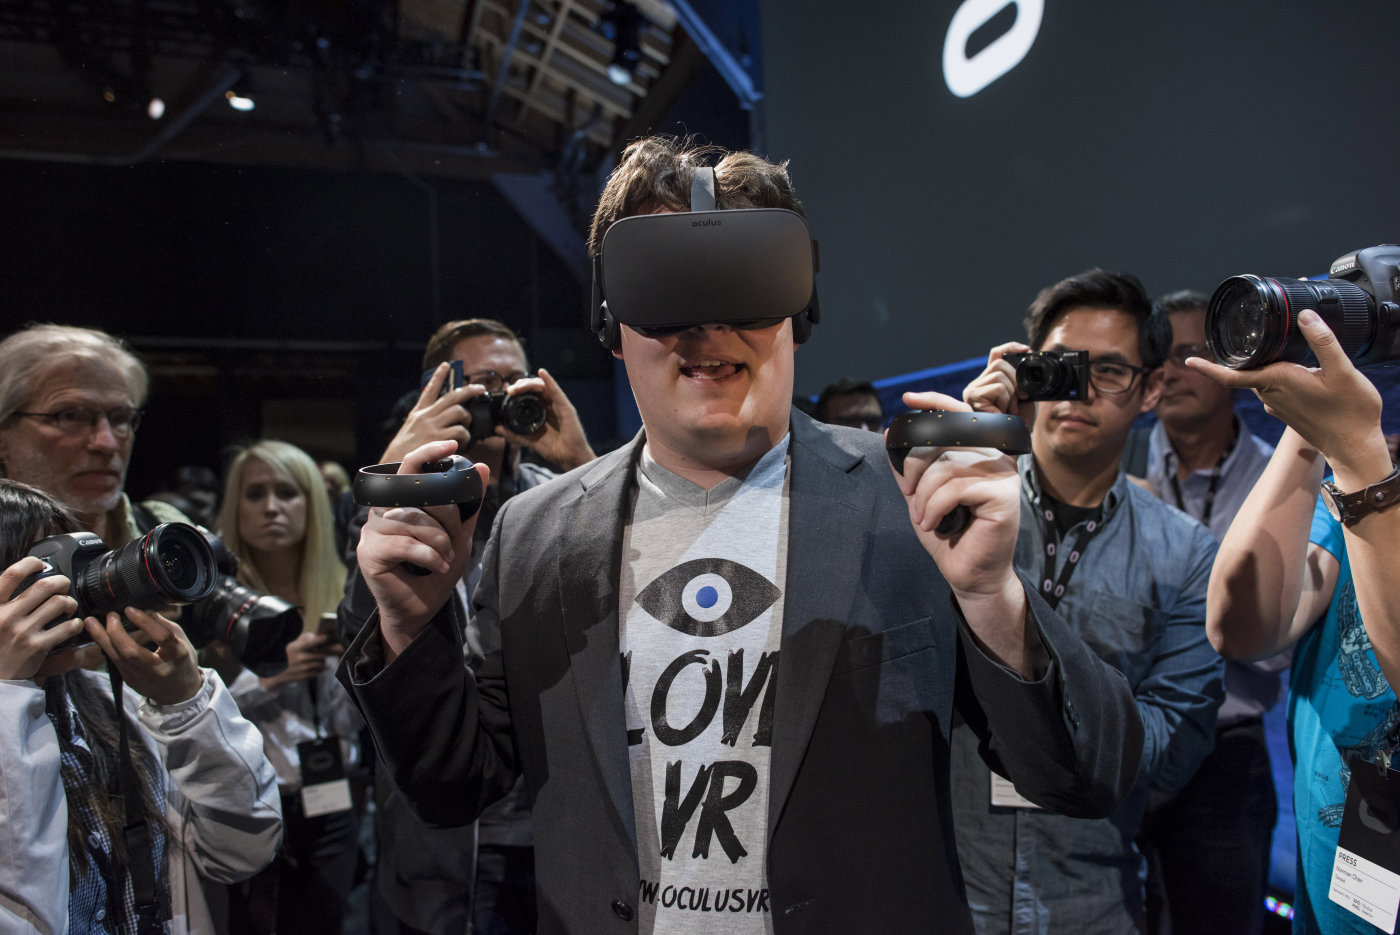 Palmer Luckey and the Oculus Rift